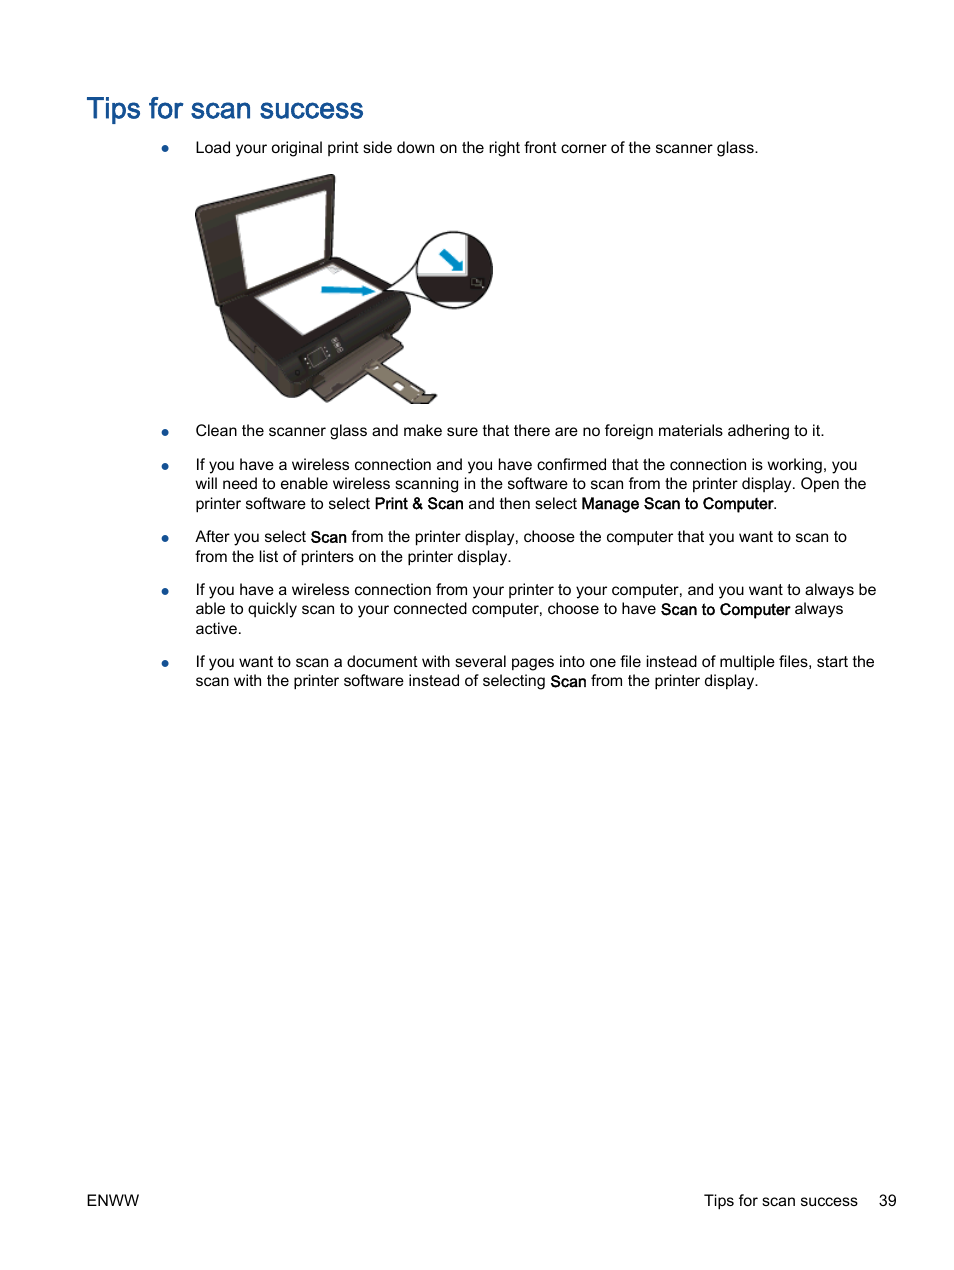 Tips for scan success | HP ENVY 4501 e-All-in-One Printer User